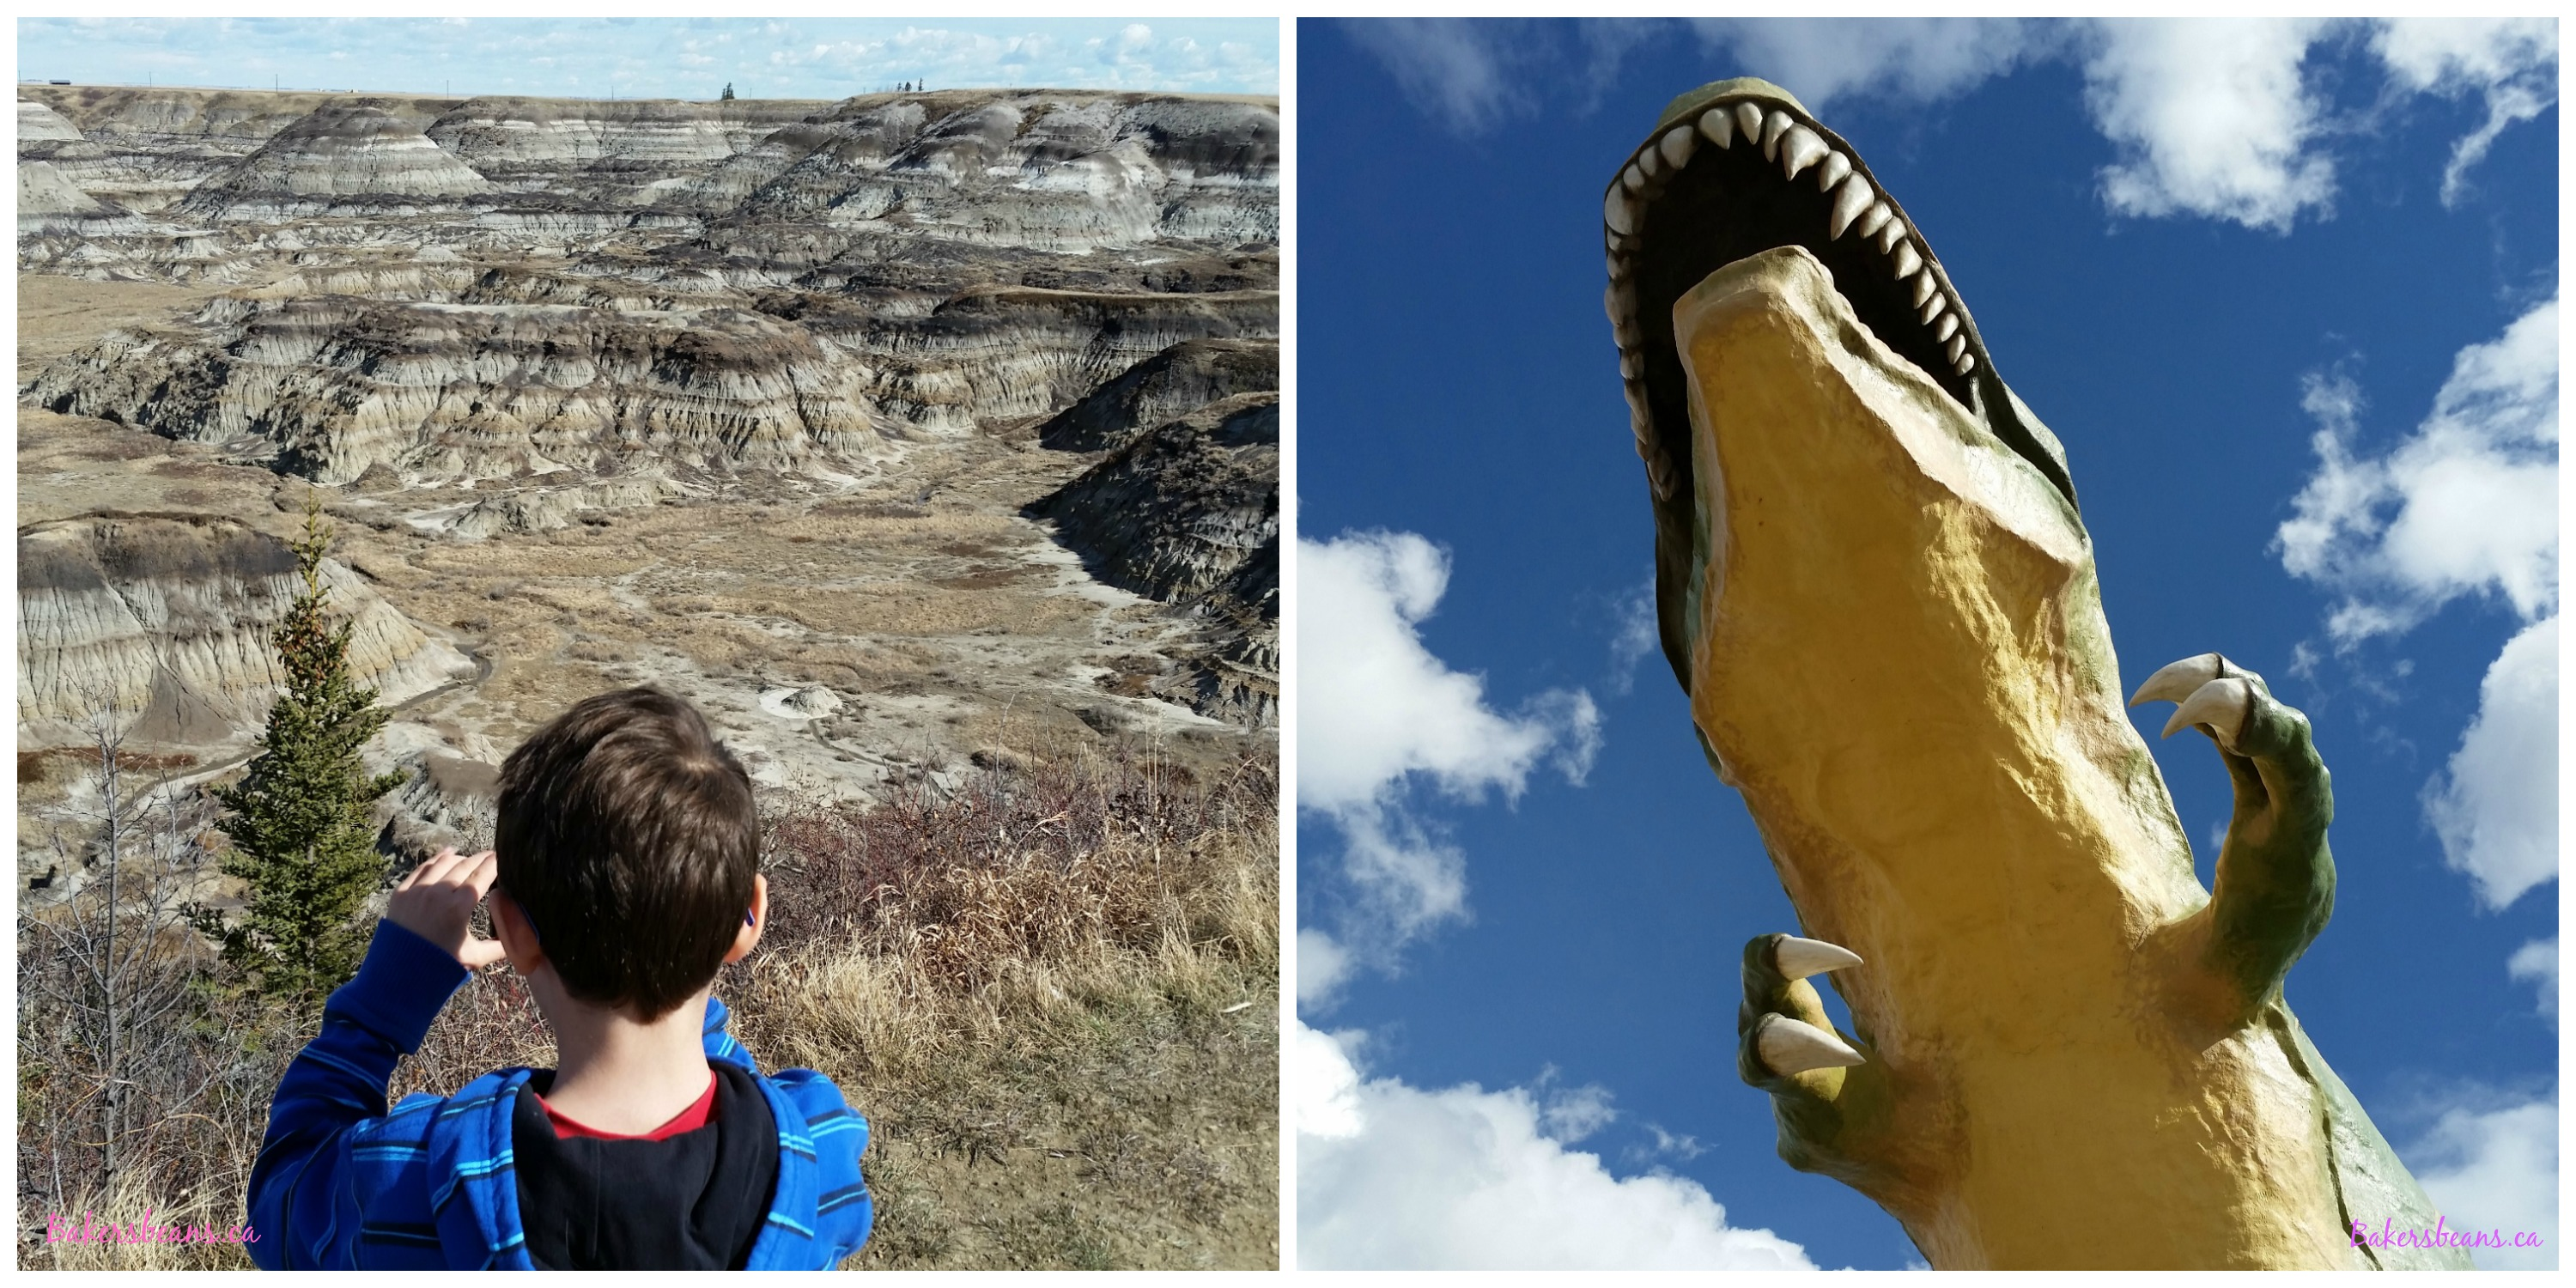 Horseshoe Canyon & the World's Largest Dinosaur